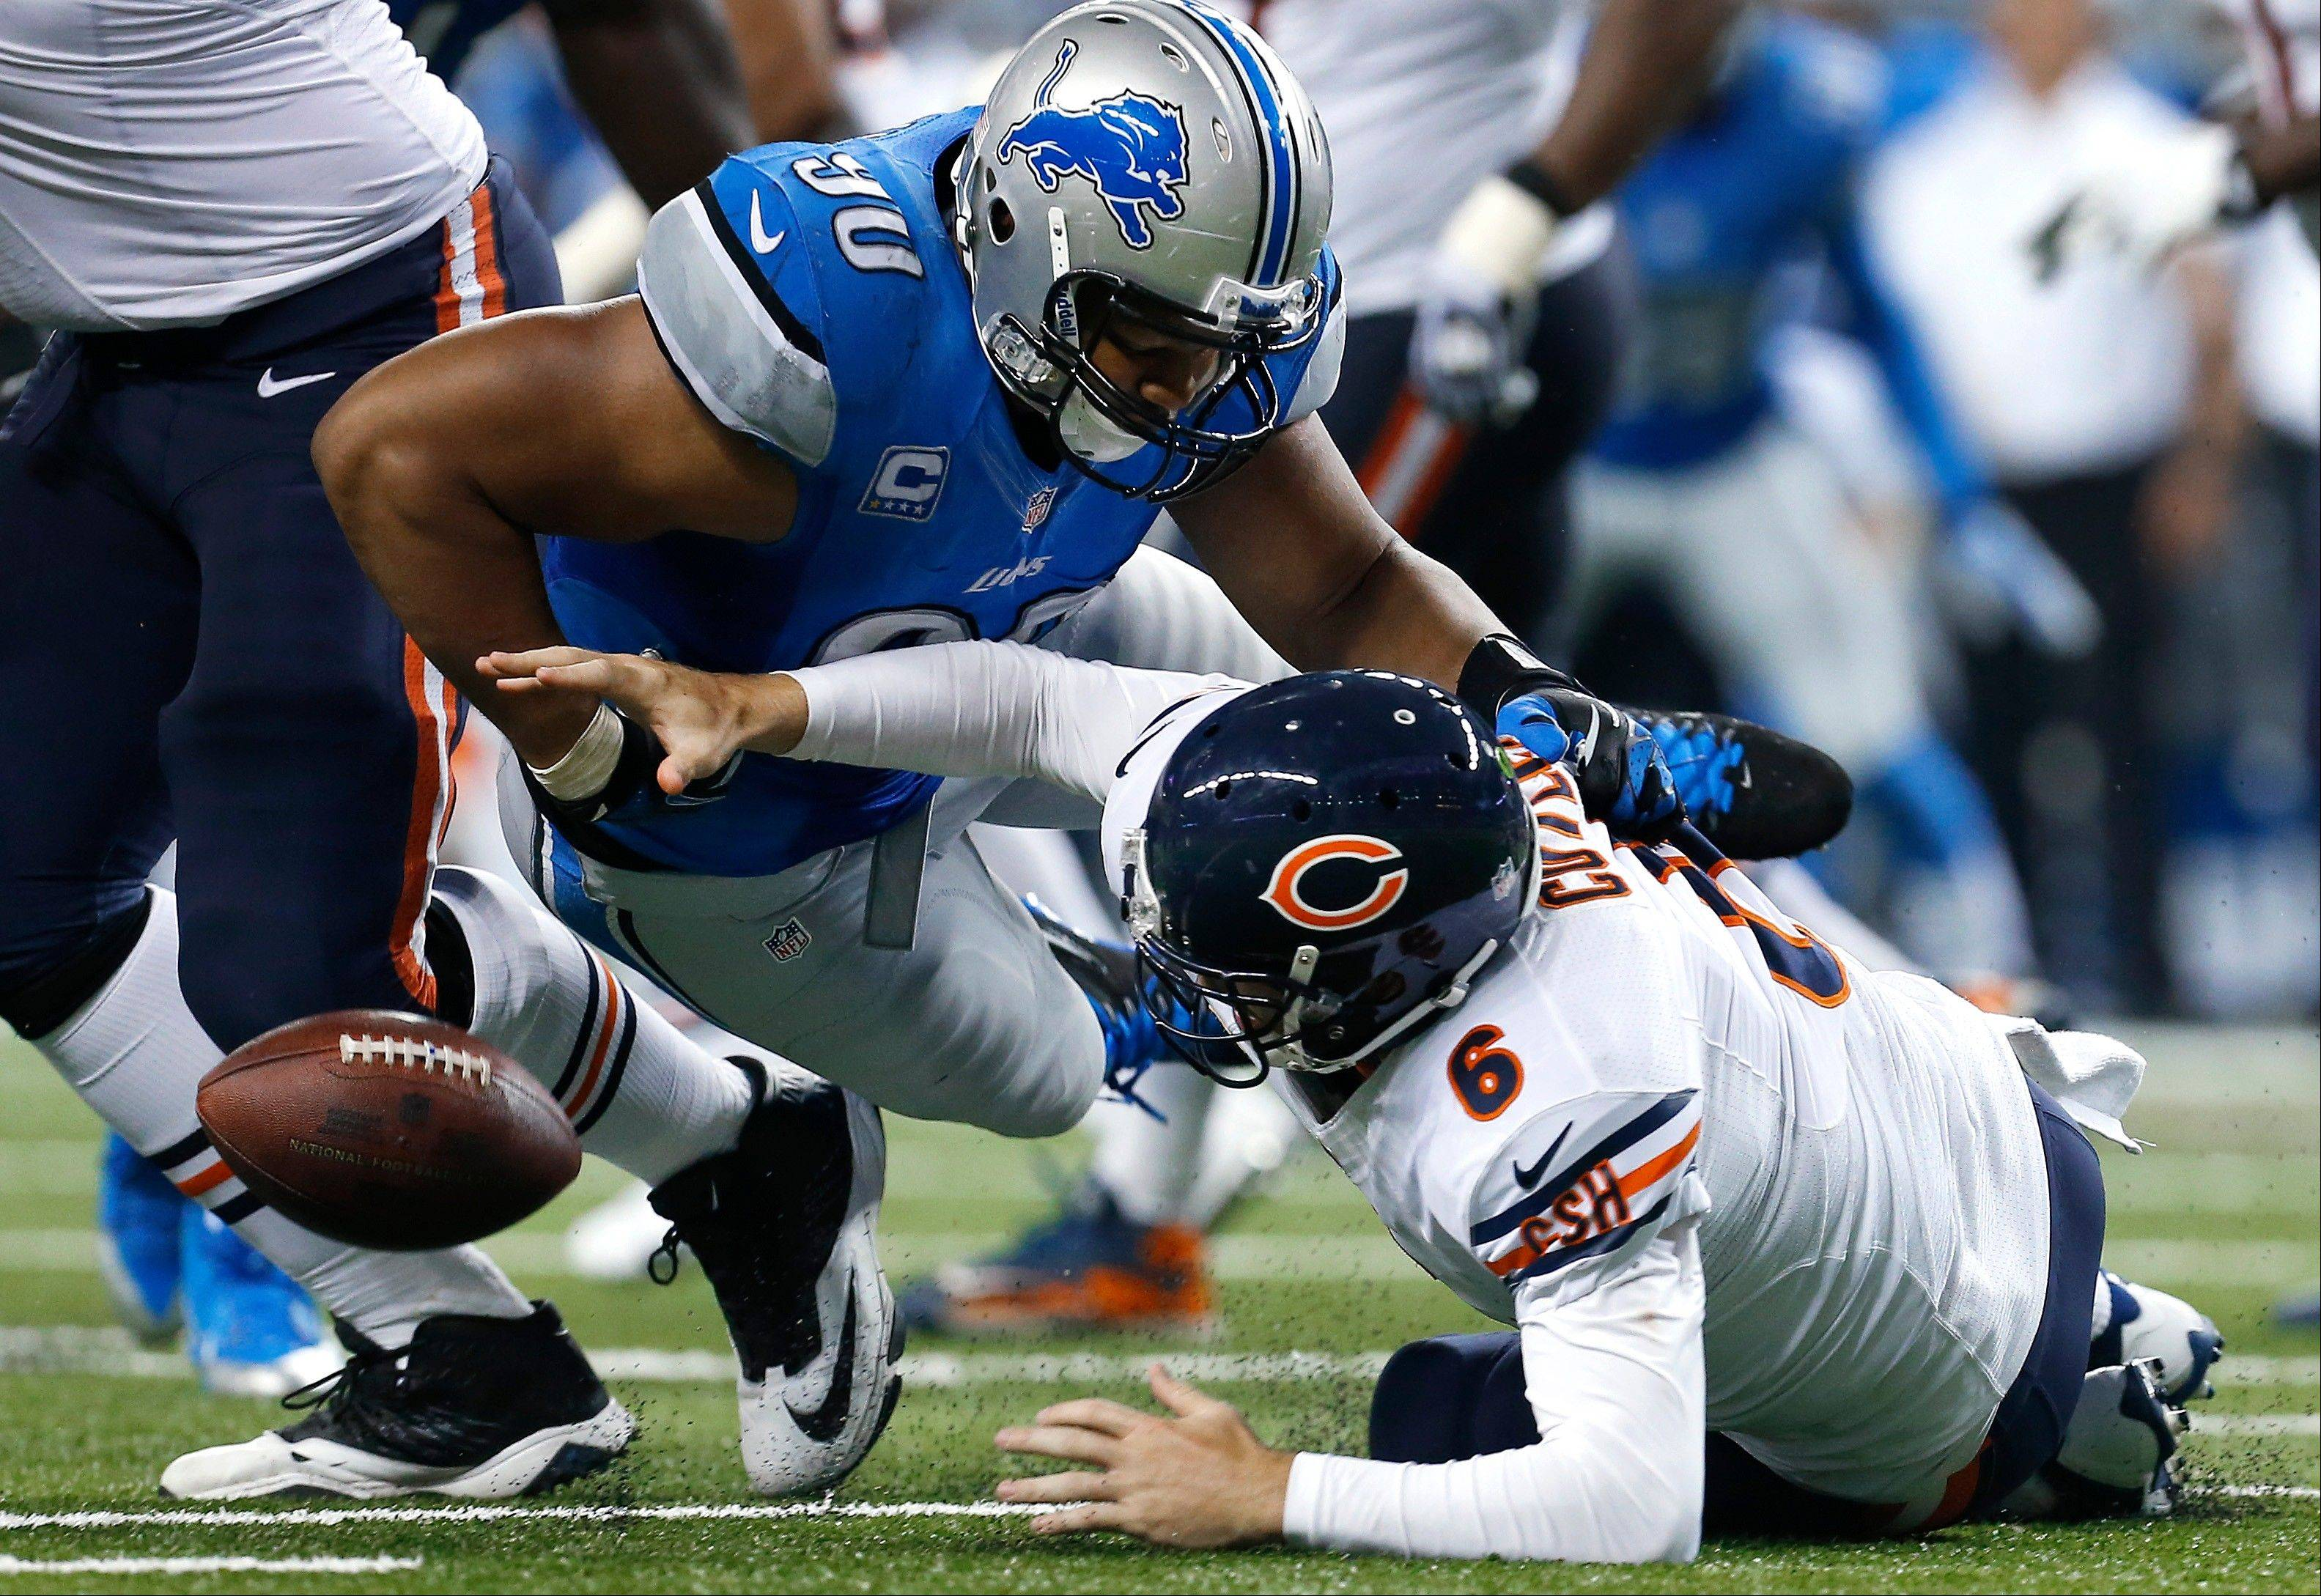 The Lions' Ndamukong Suh forces a fumble by Jay Cutler that defensive tackle Nick Fairley recovered for a touchdown during the third quarter of the Bears' loss Sunday. It was 1 of 4 turnovers by Cutler on the afternoon.